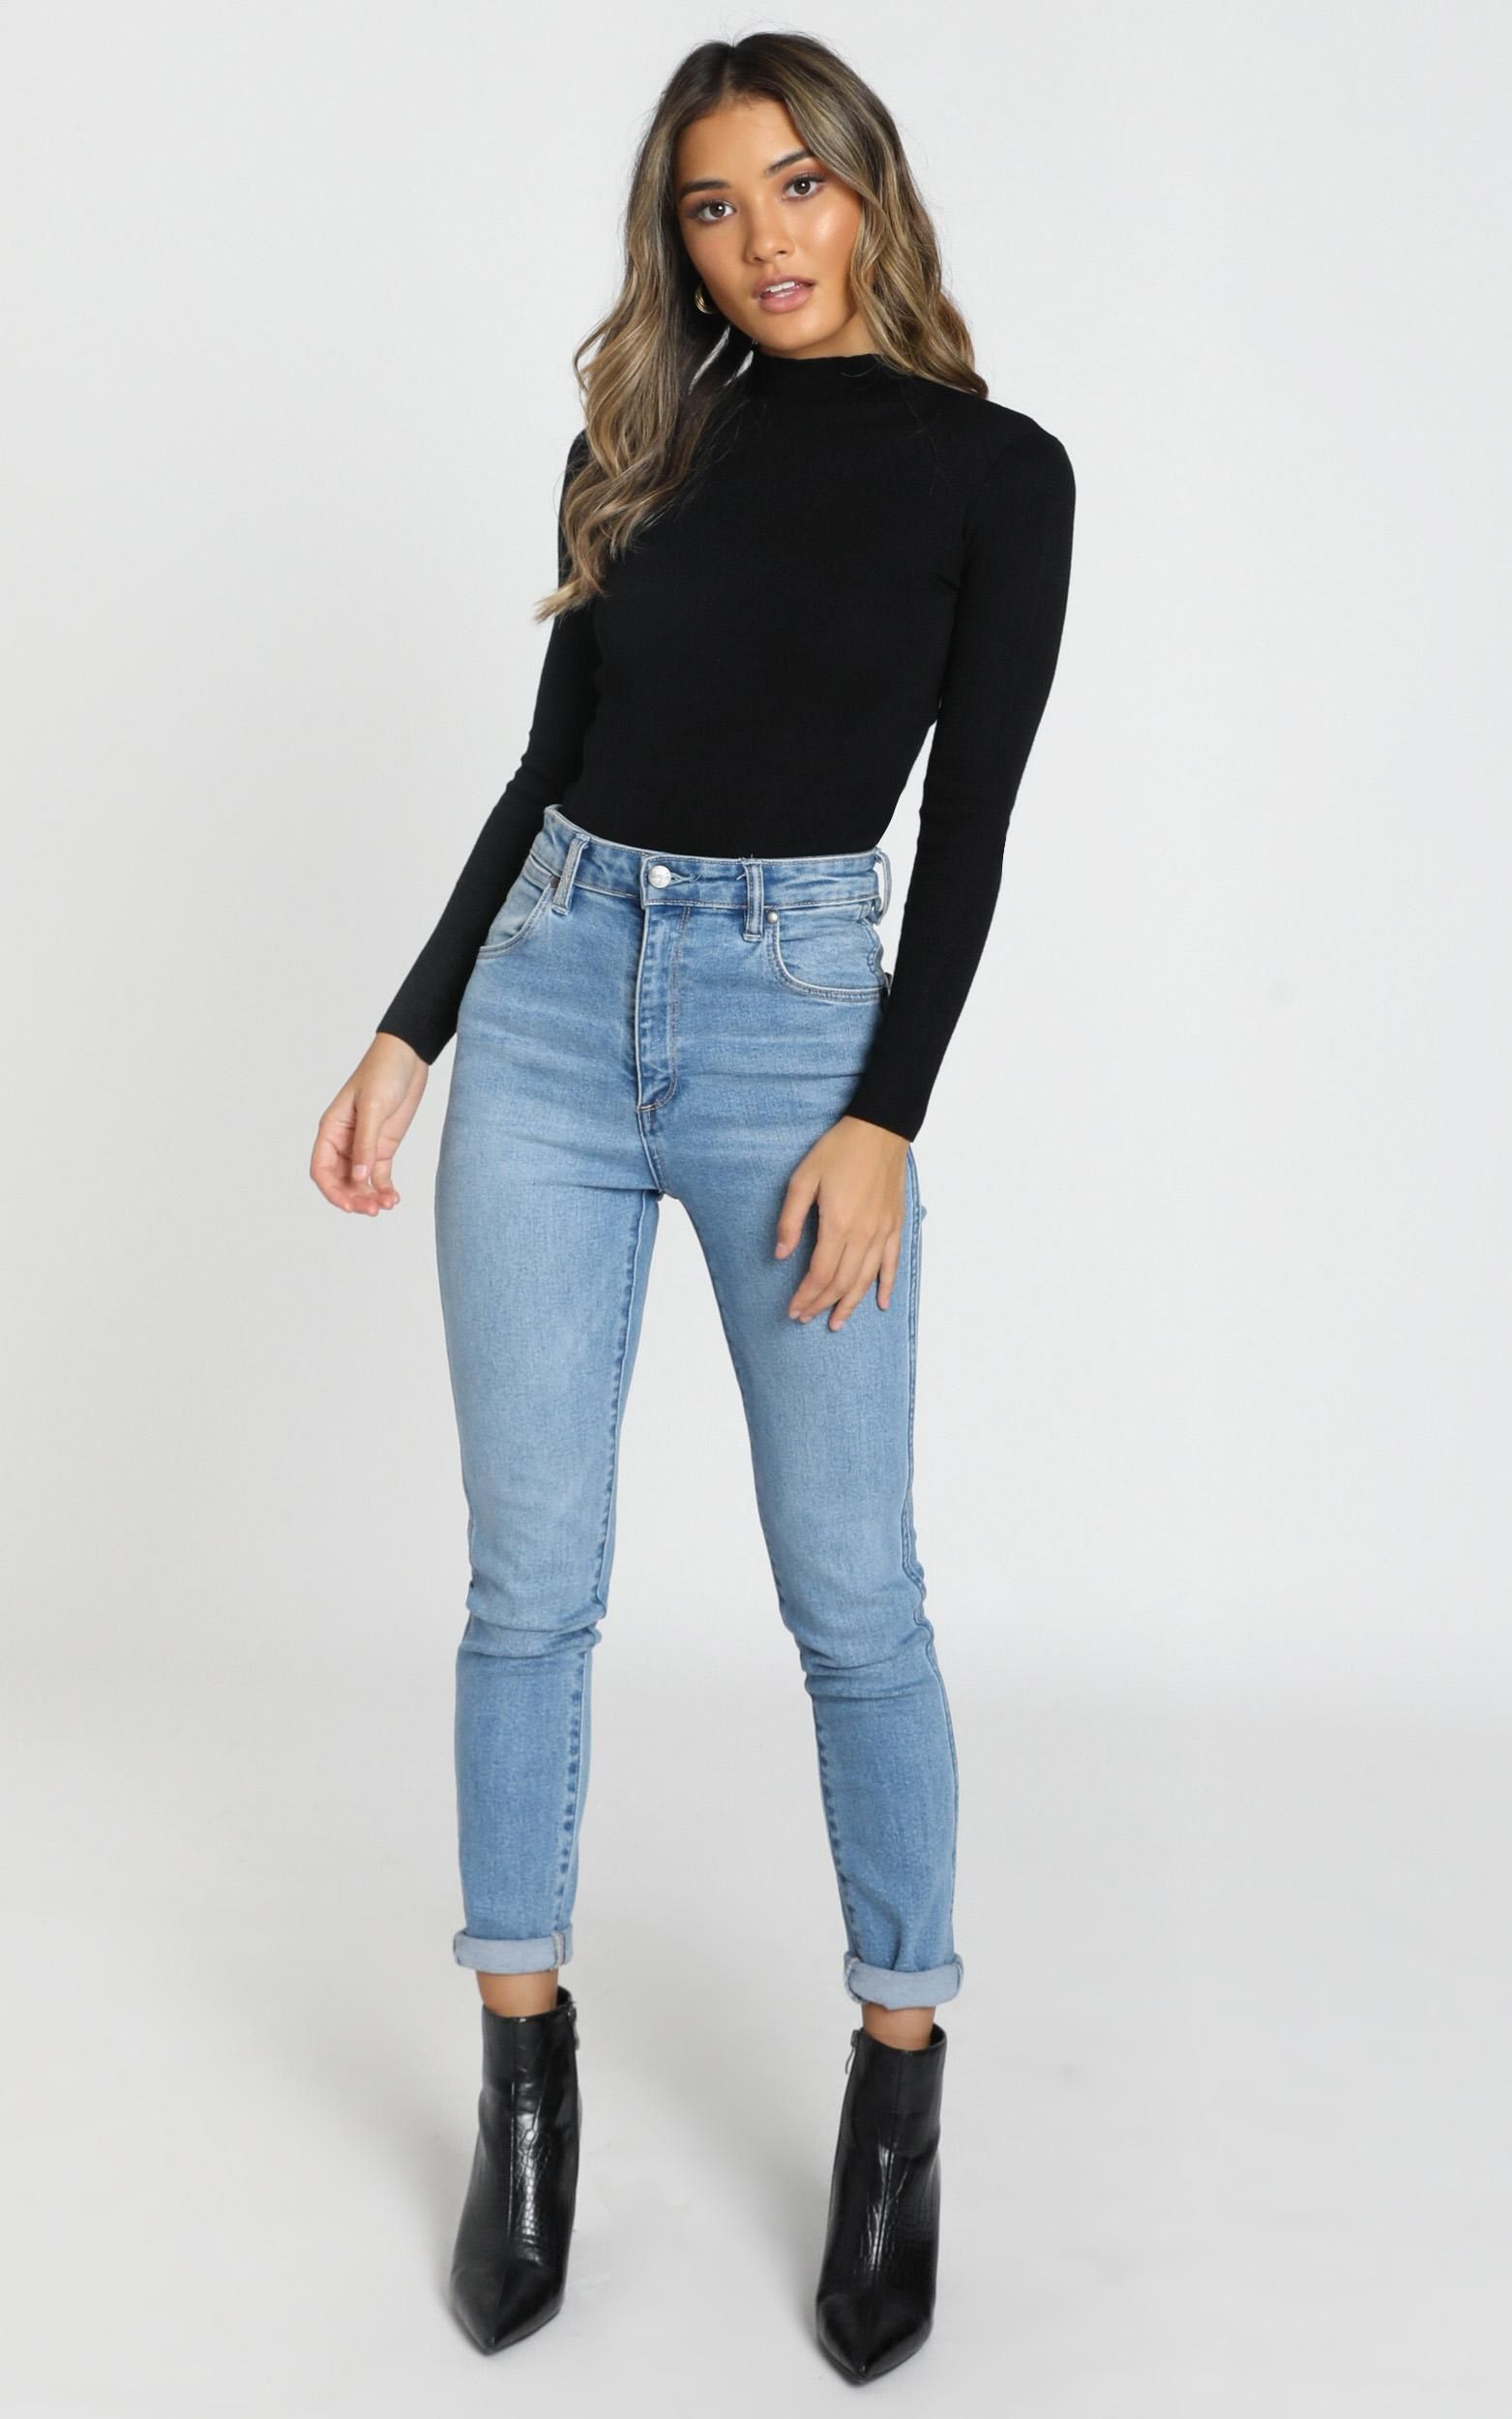 Lust For Life Knit Top in Black